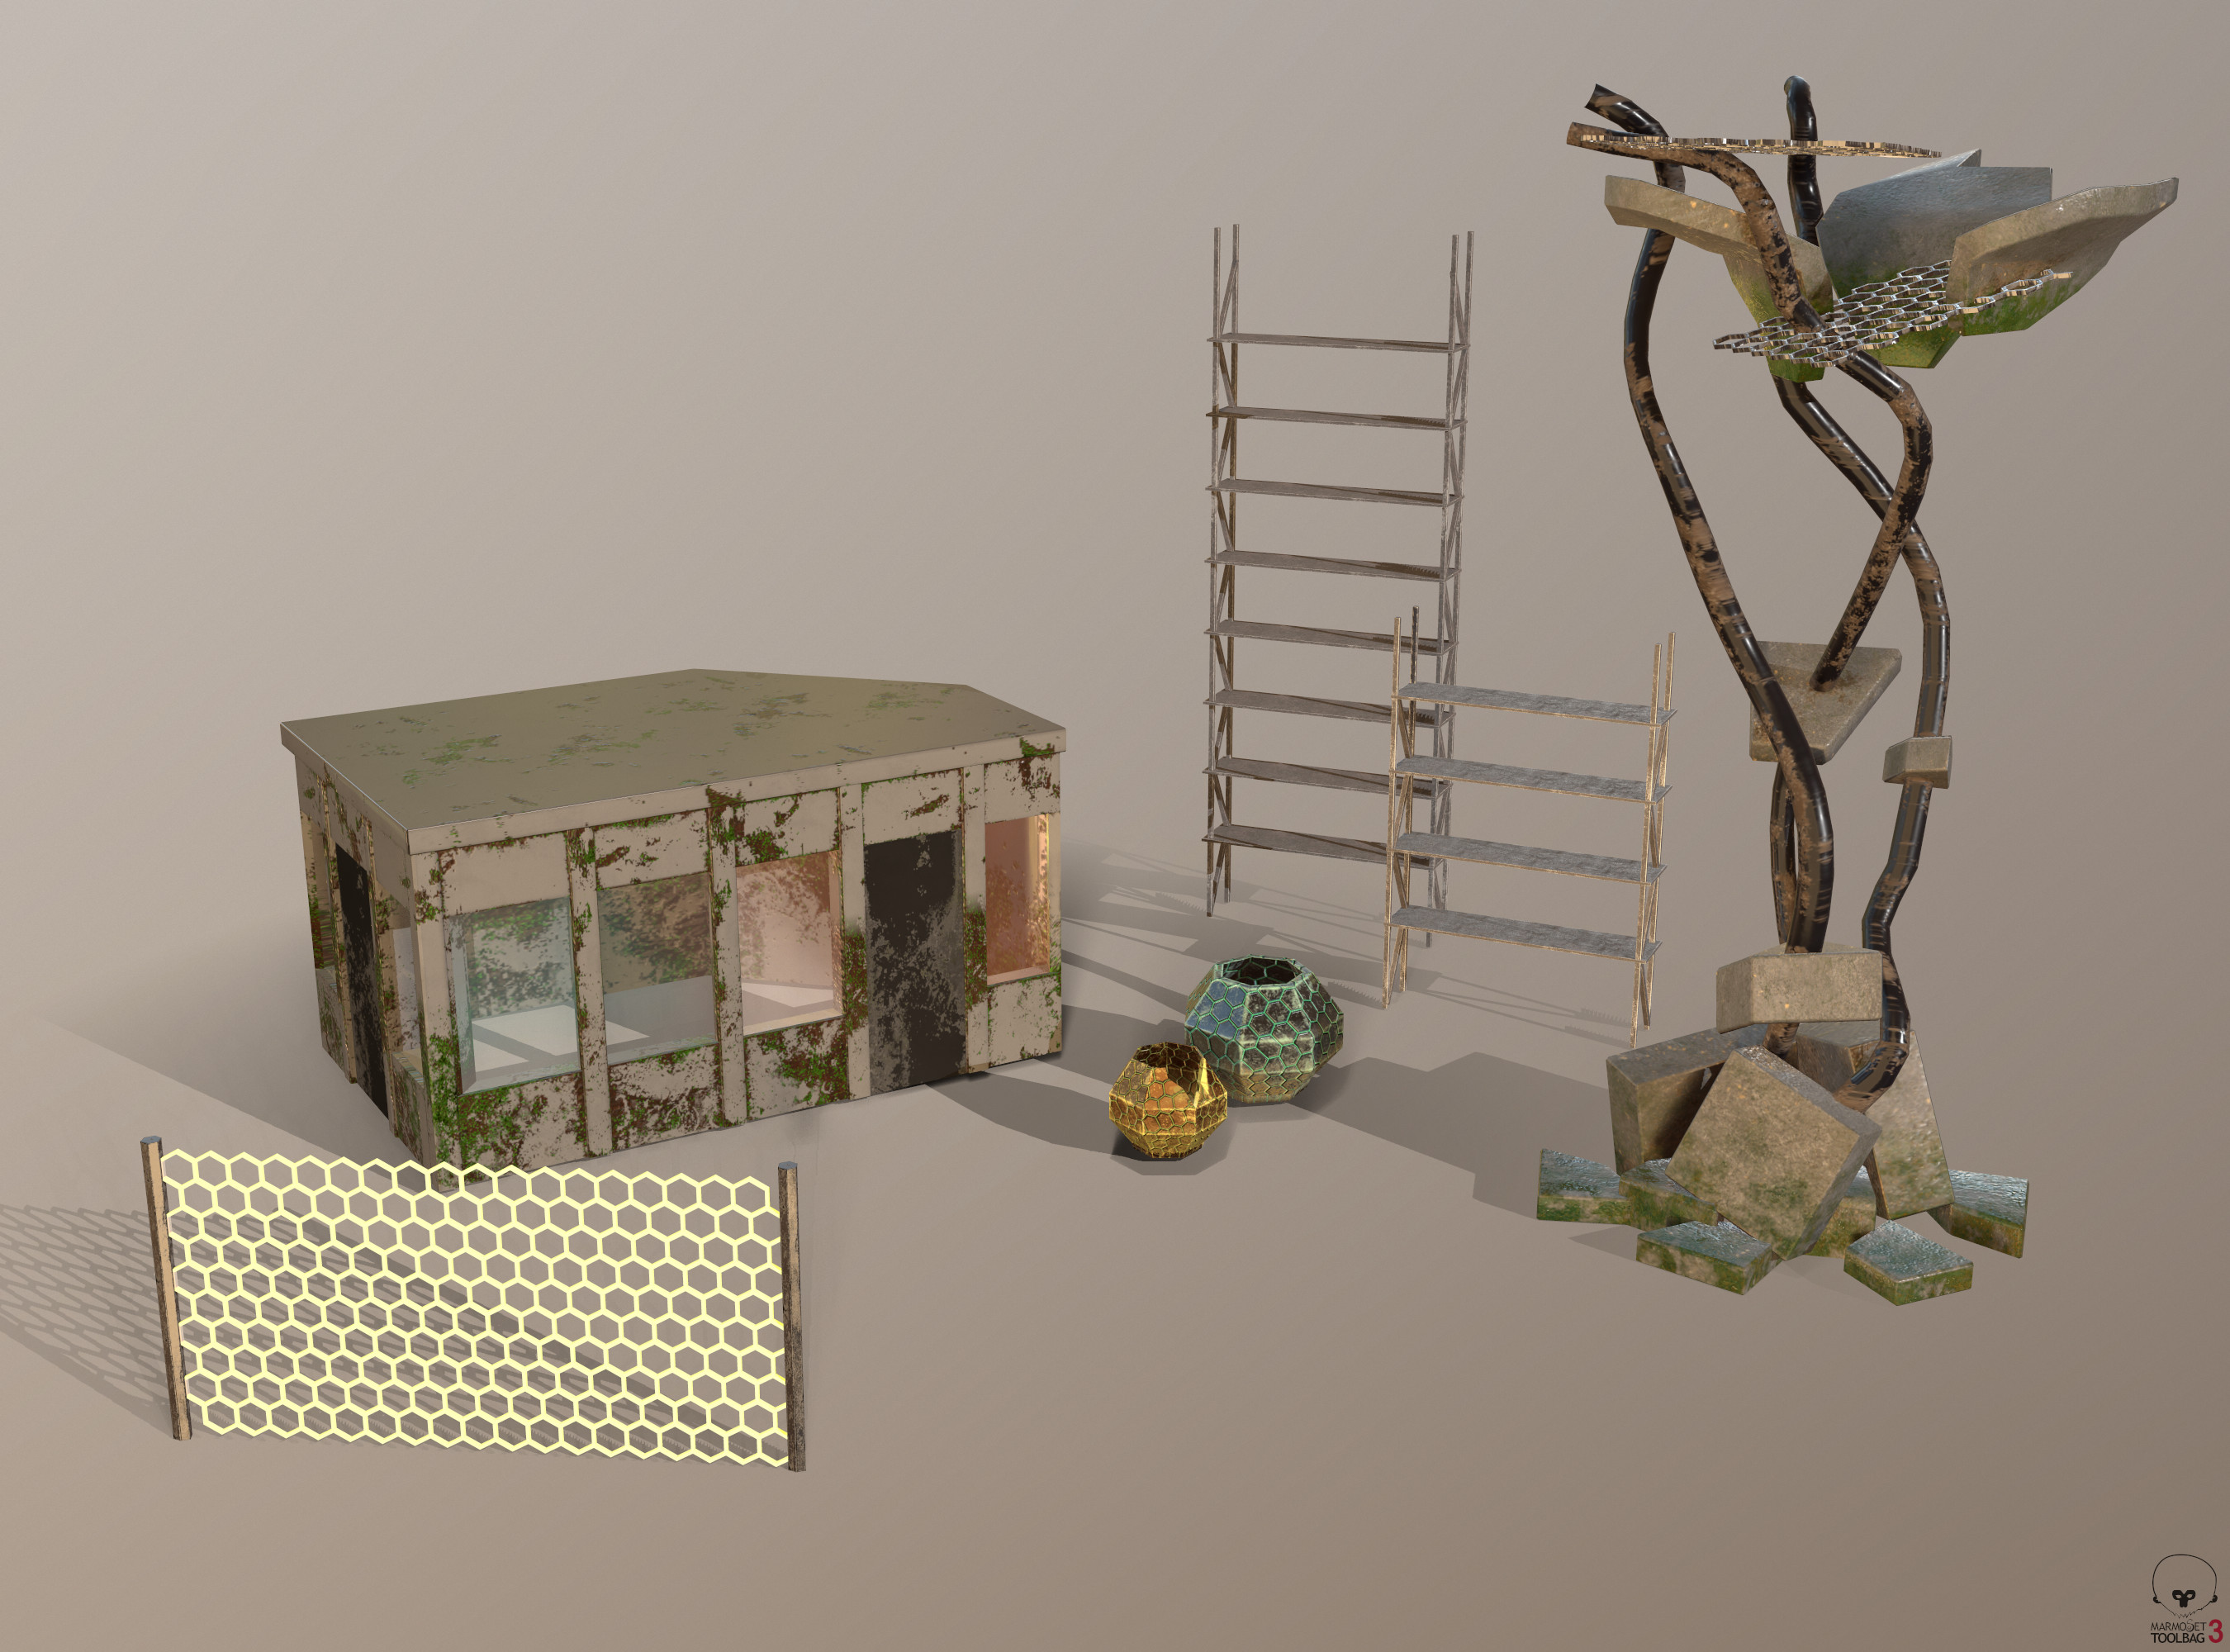 All the props I made for the scene.